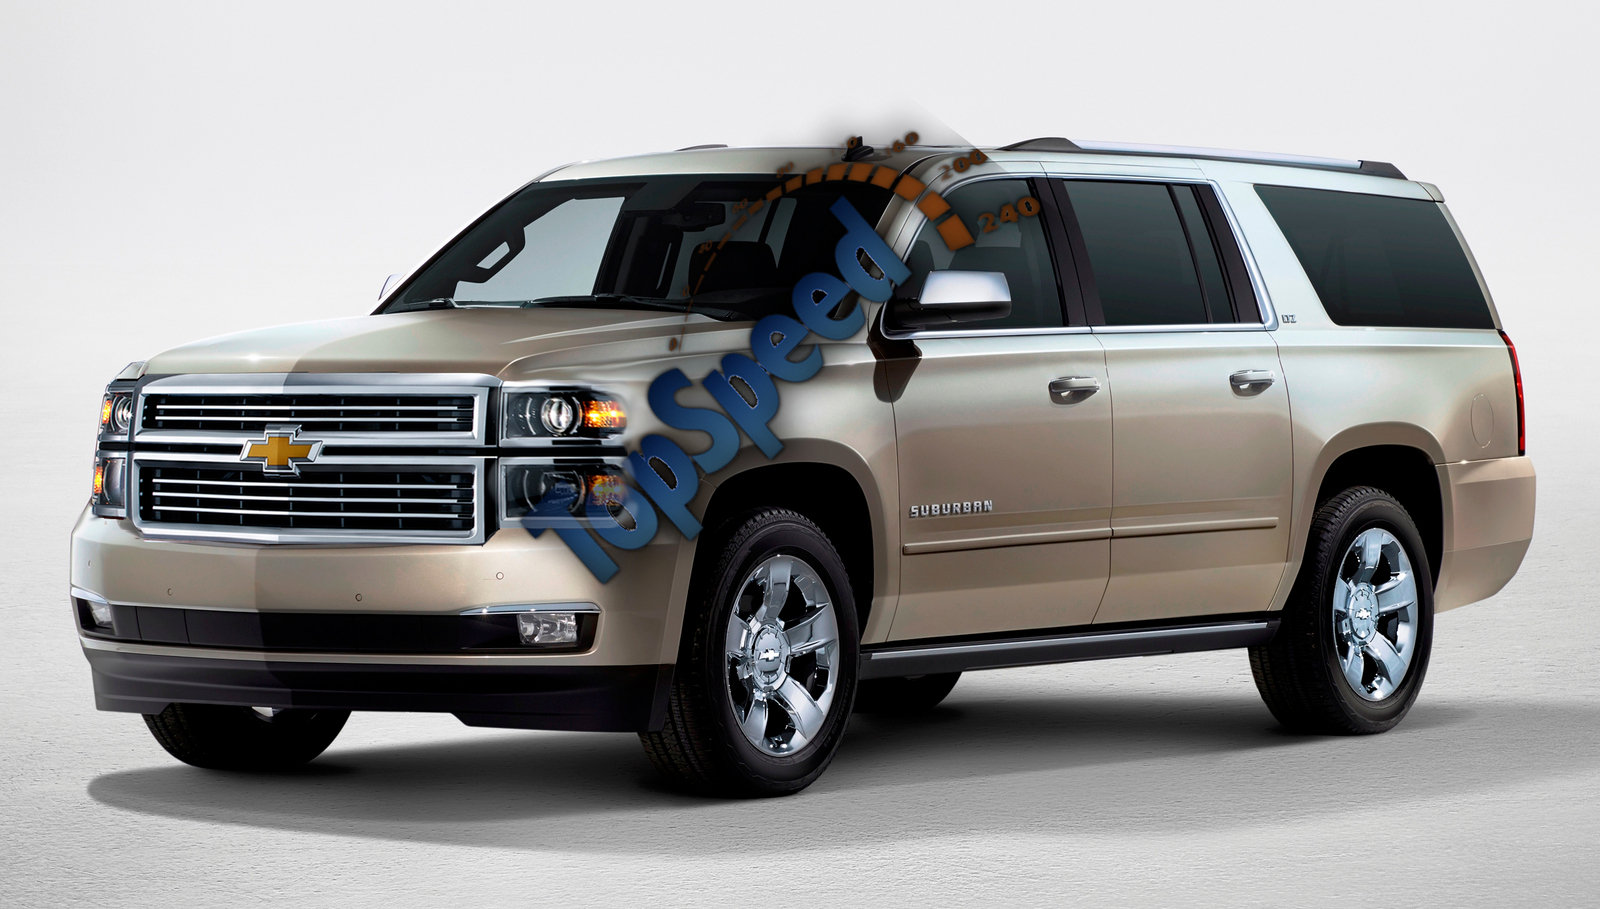 2015 chevrolet suburban picture 526053 car review top speed. Black Bedroom Furniture Sets. Home Design Ideas